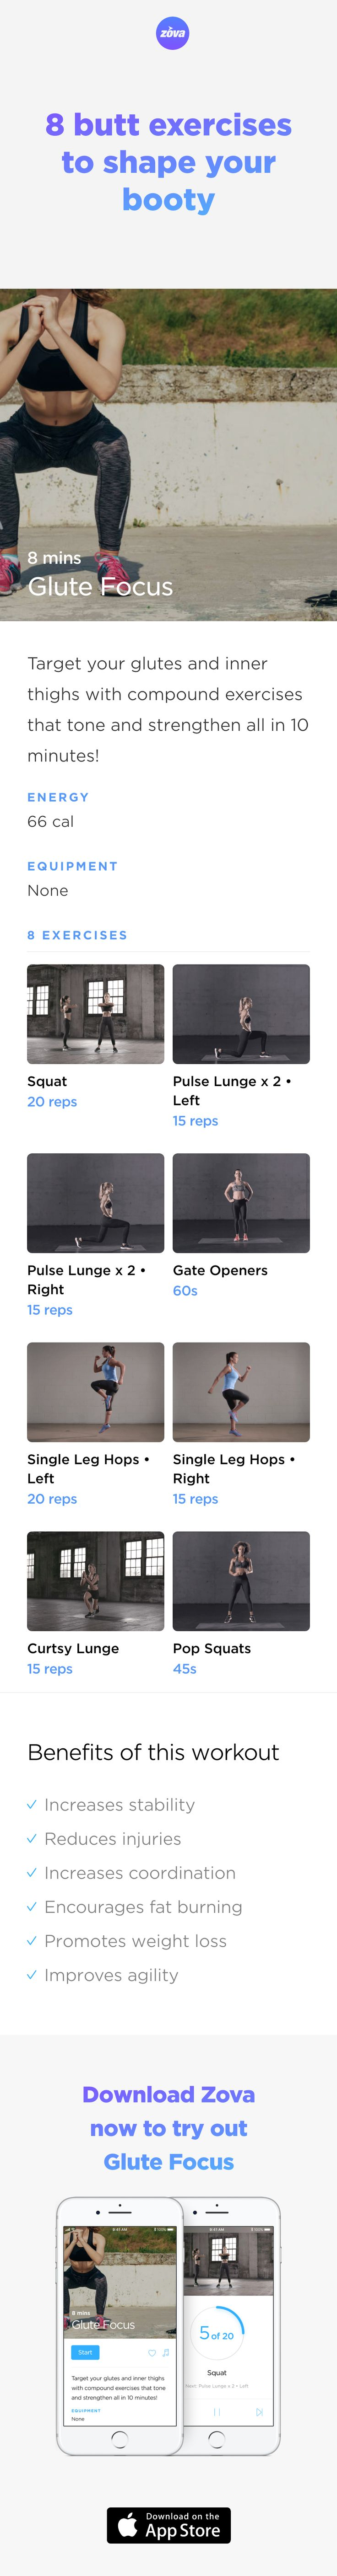 Get buns of steel in less than 10 minutes with this easy body-weight workout. By focusing on your glutes, you'll help shape your body and firm your butt, while improving your posture and burning fat at the same time. Tone up and increase your fitness in less time than it takes to make a coffee! #booty #butt #workout  #fitness #HIIT